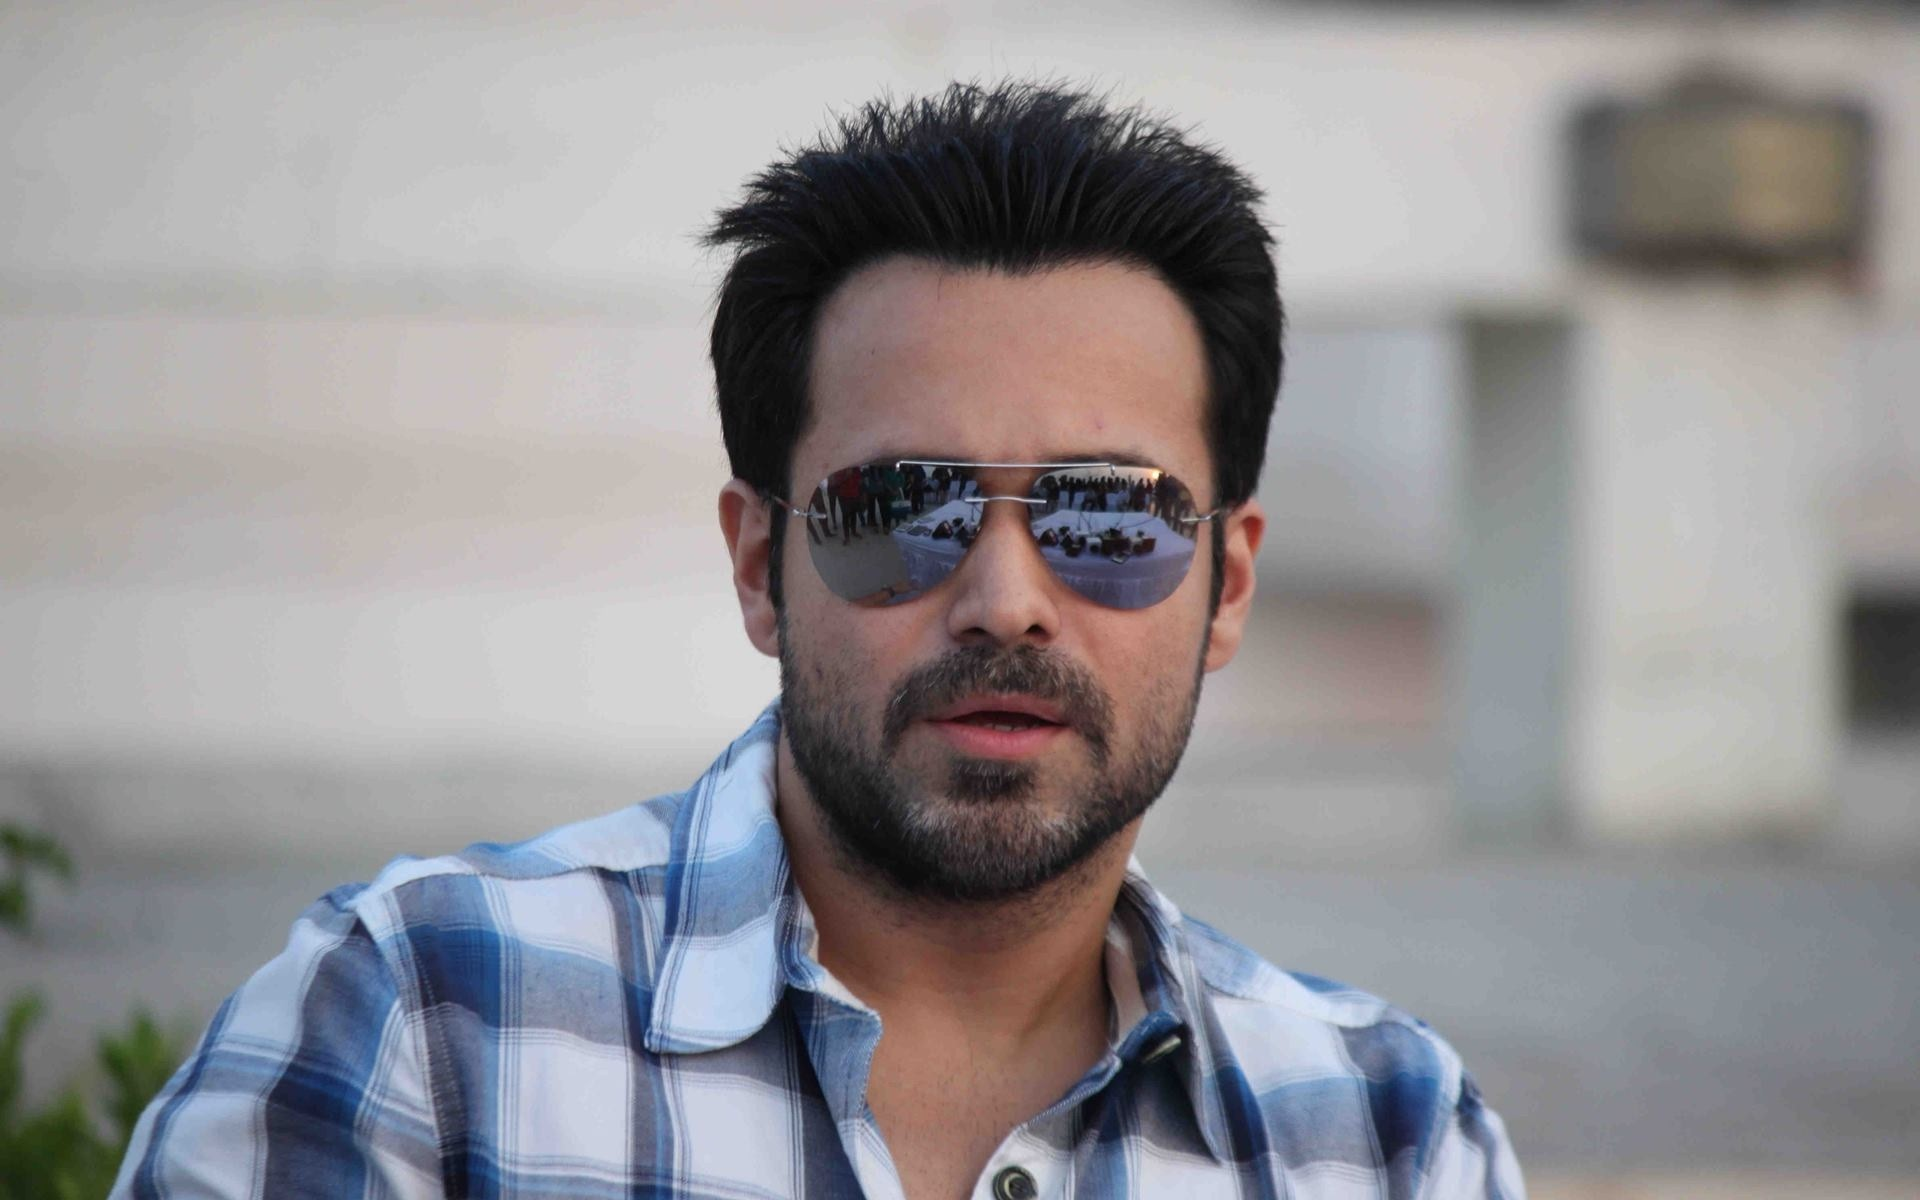 emraan hashmi glasses wallpaper 61243